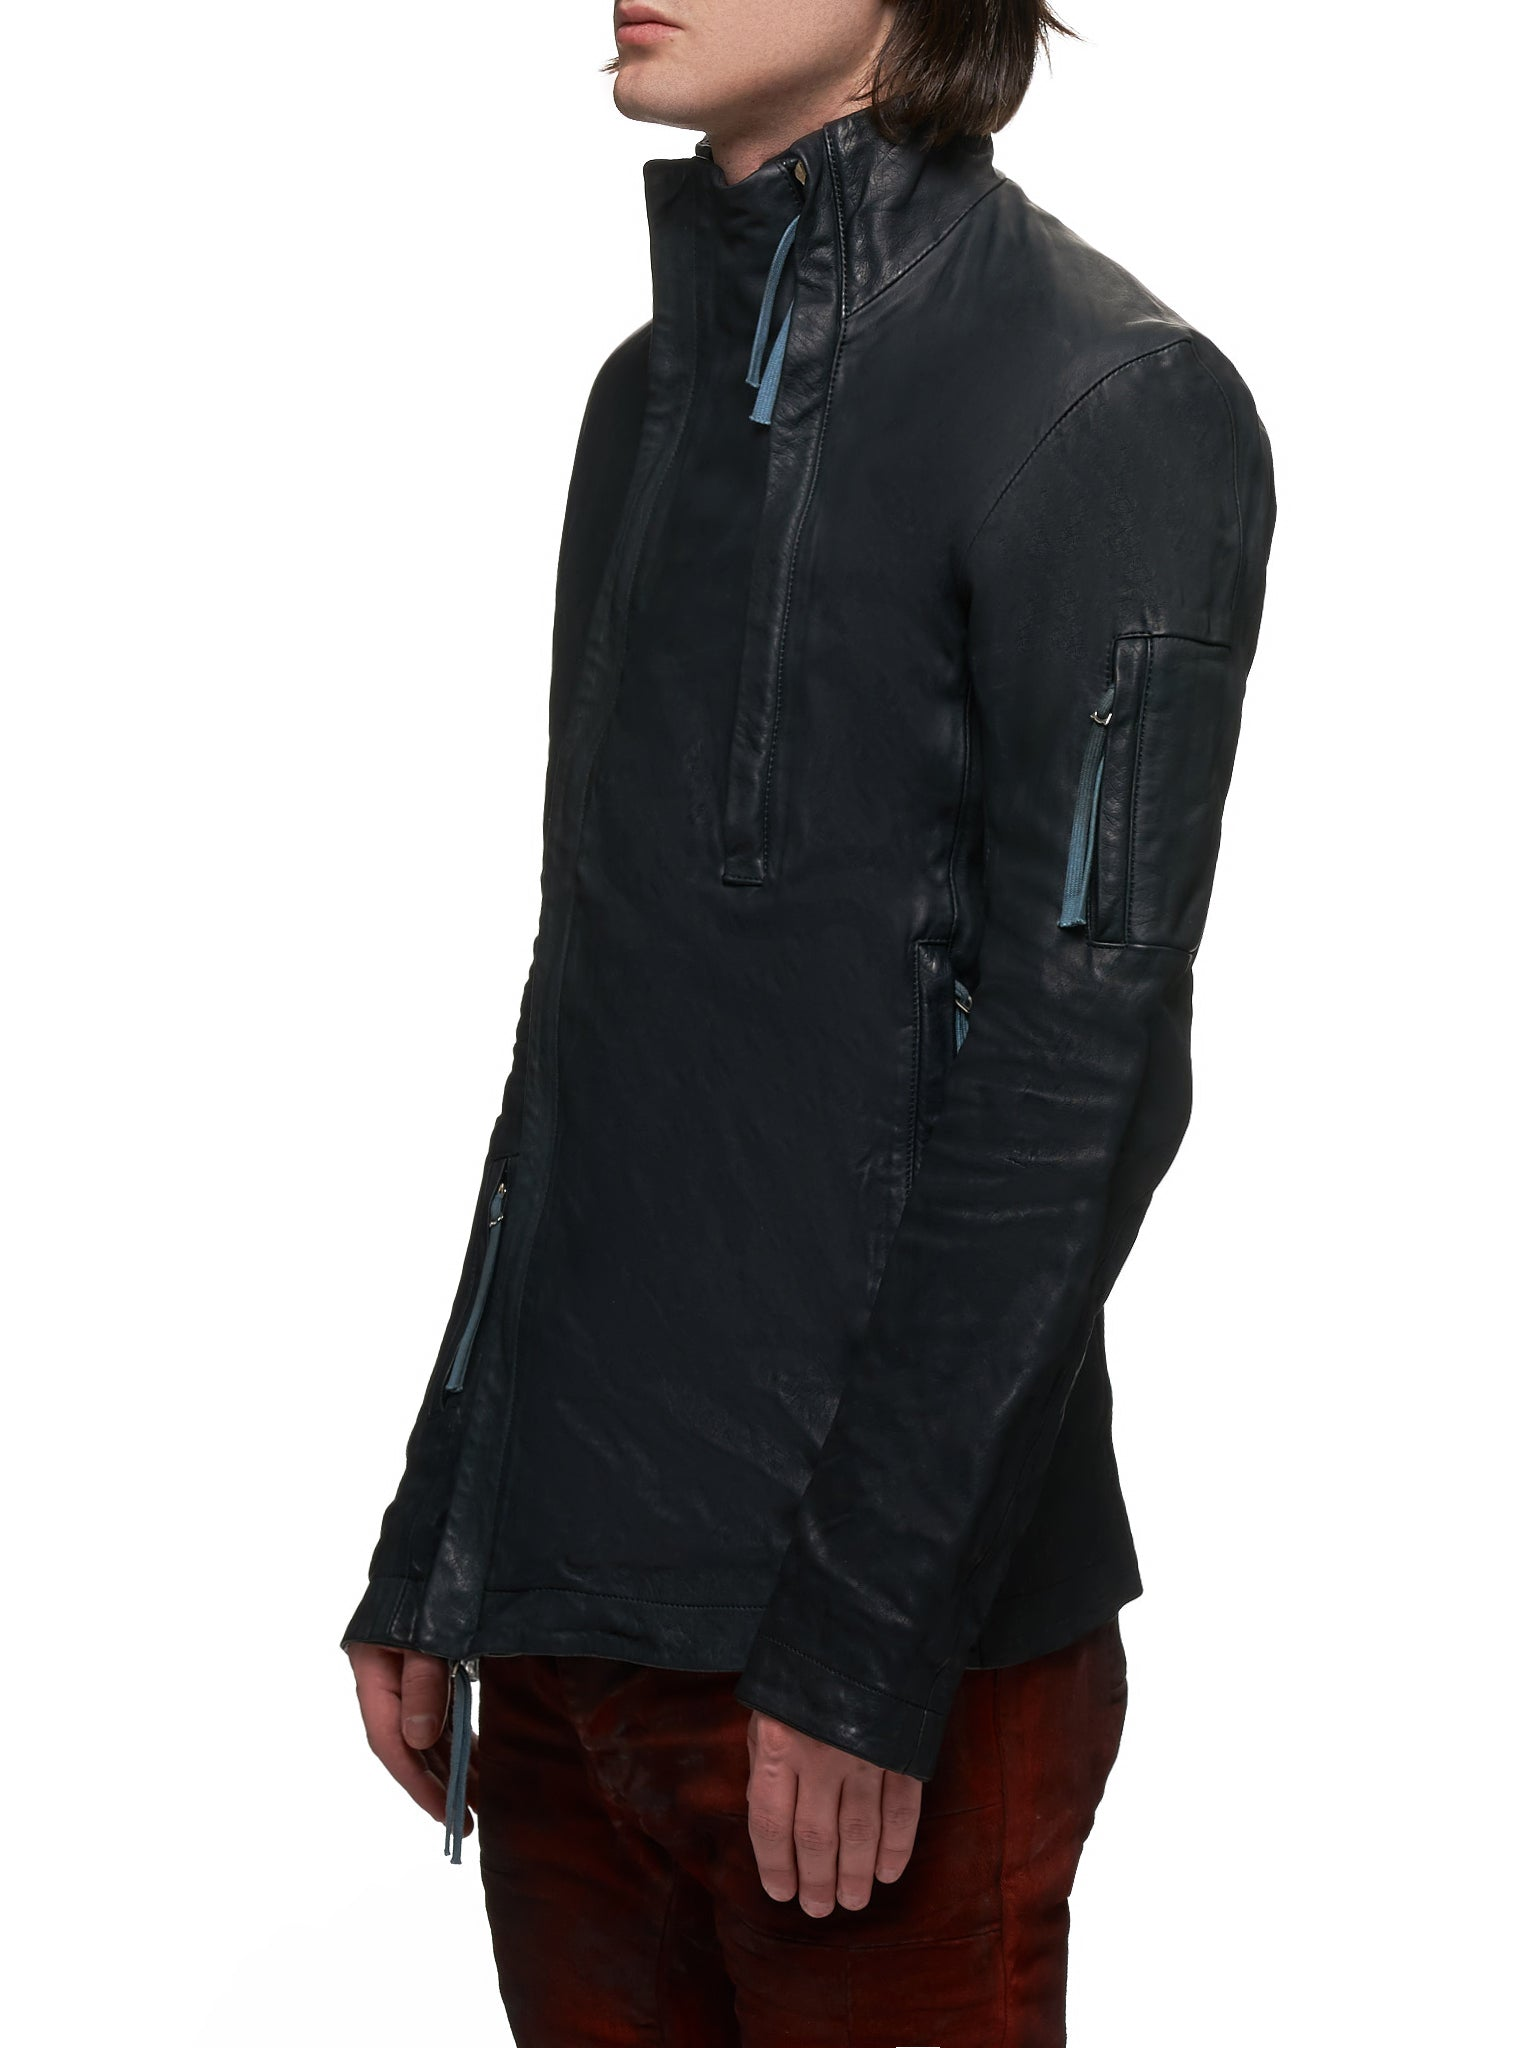 Boris Bidjan Saberi Leather J5 Jacket - Hlorenzo Side